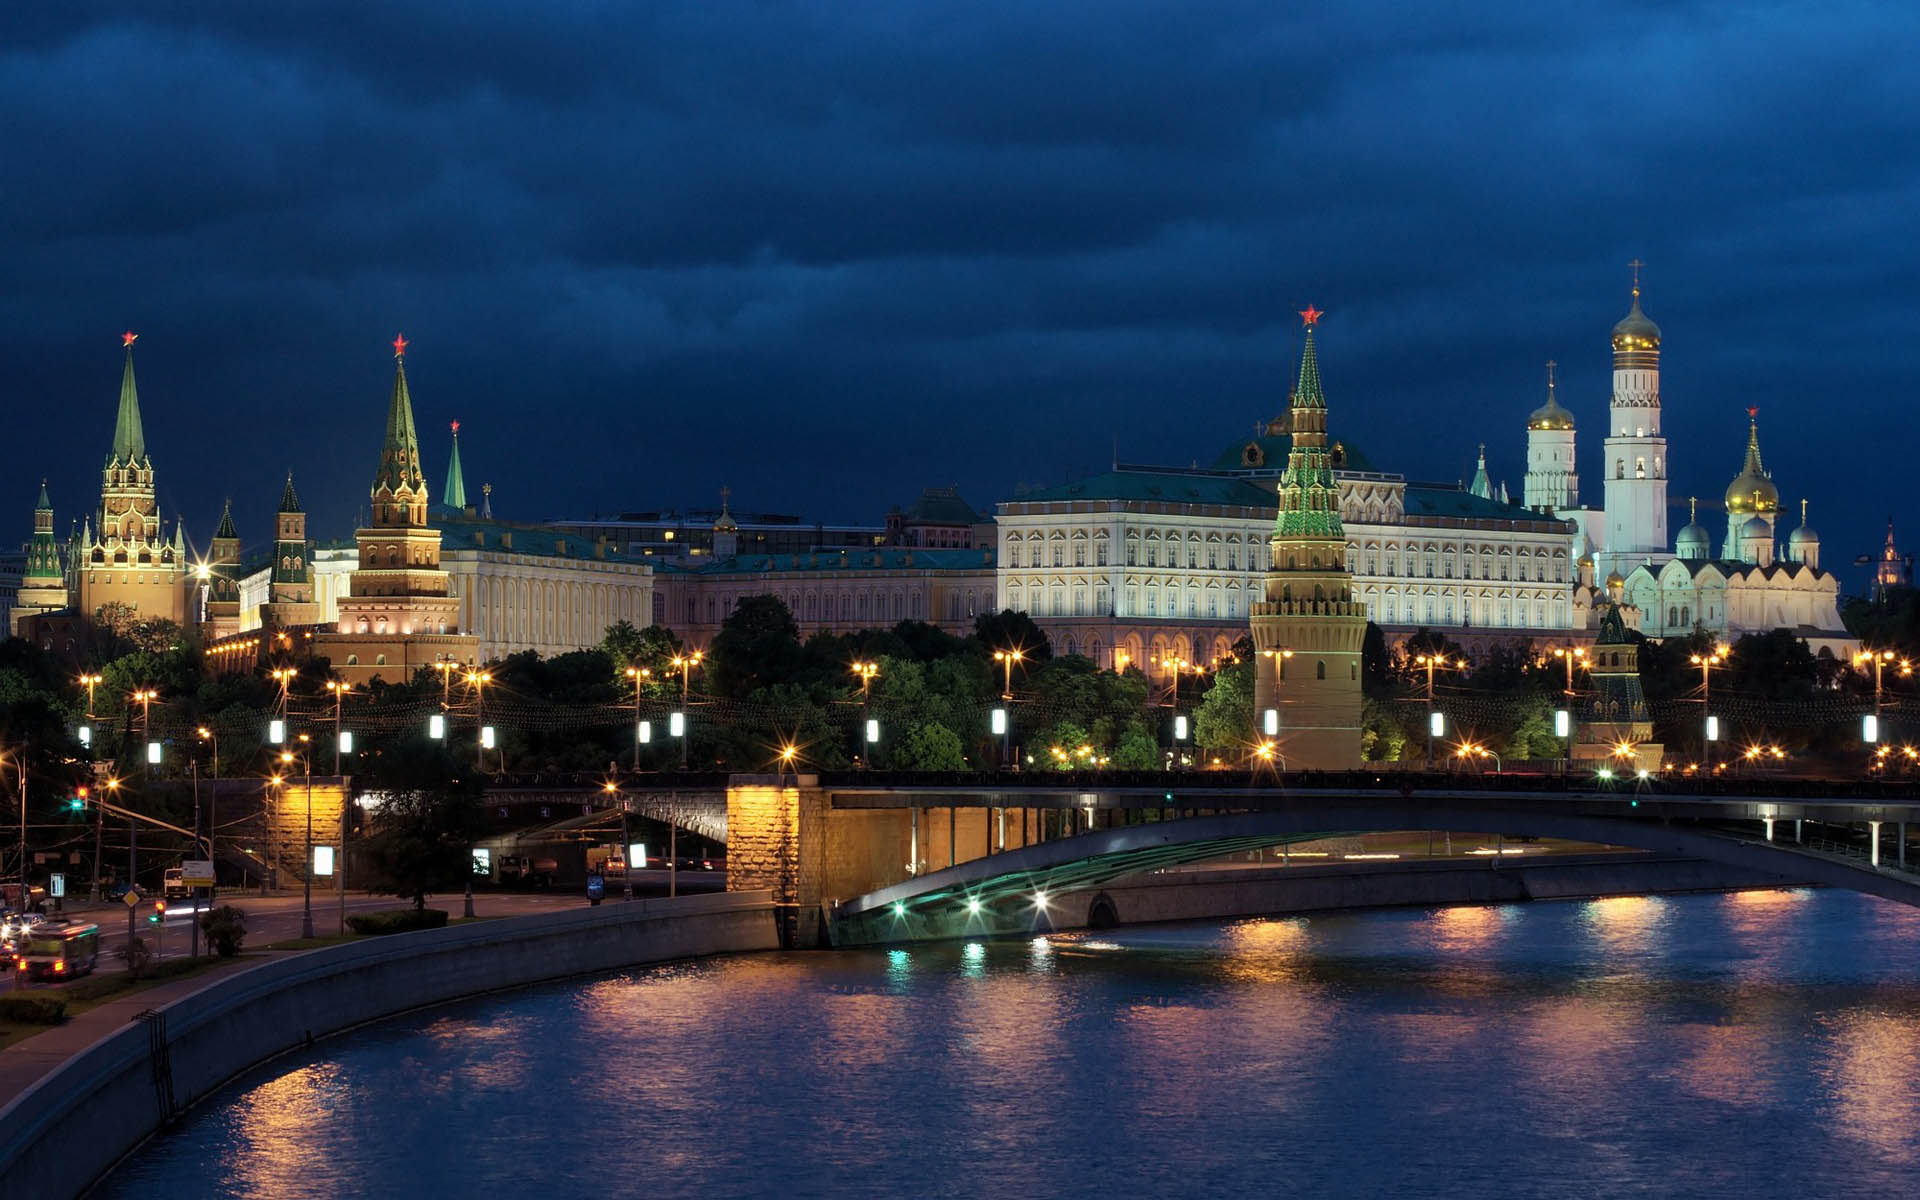 Russian Govt: Bitcoin 'Expanding', Putin 'Mad' About Digital Economy